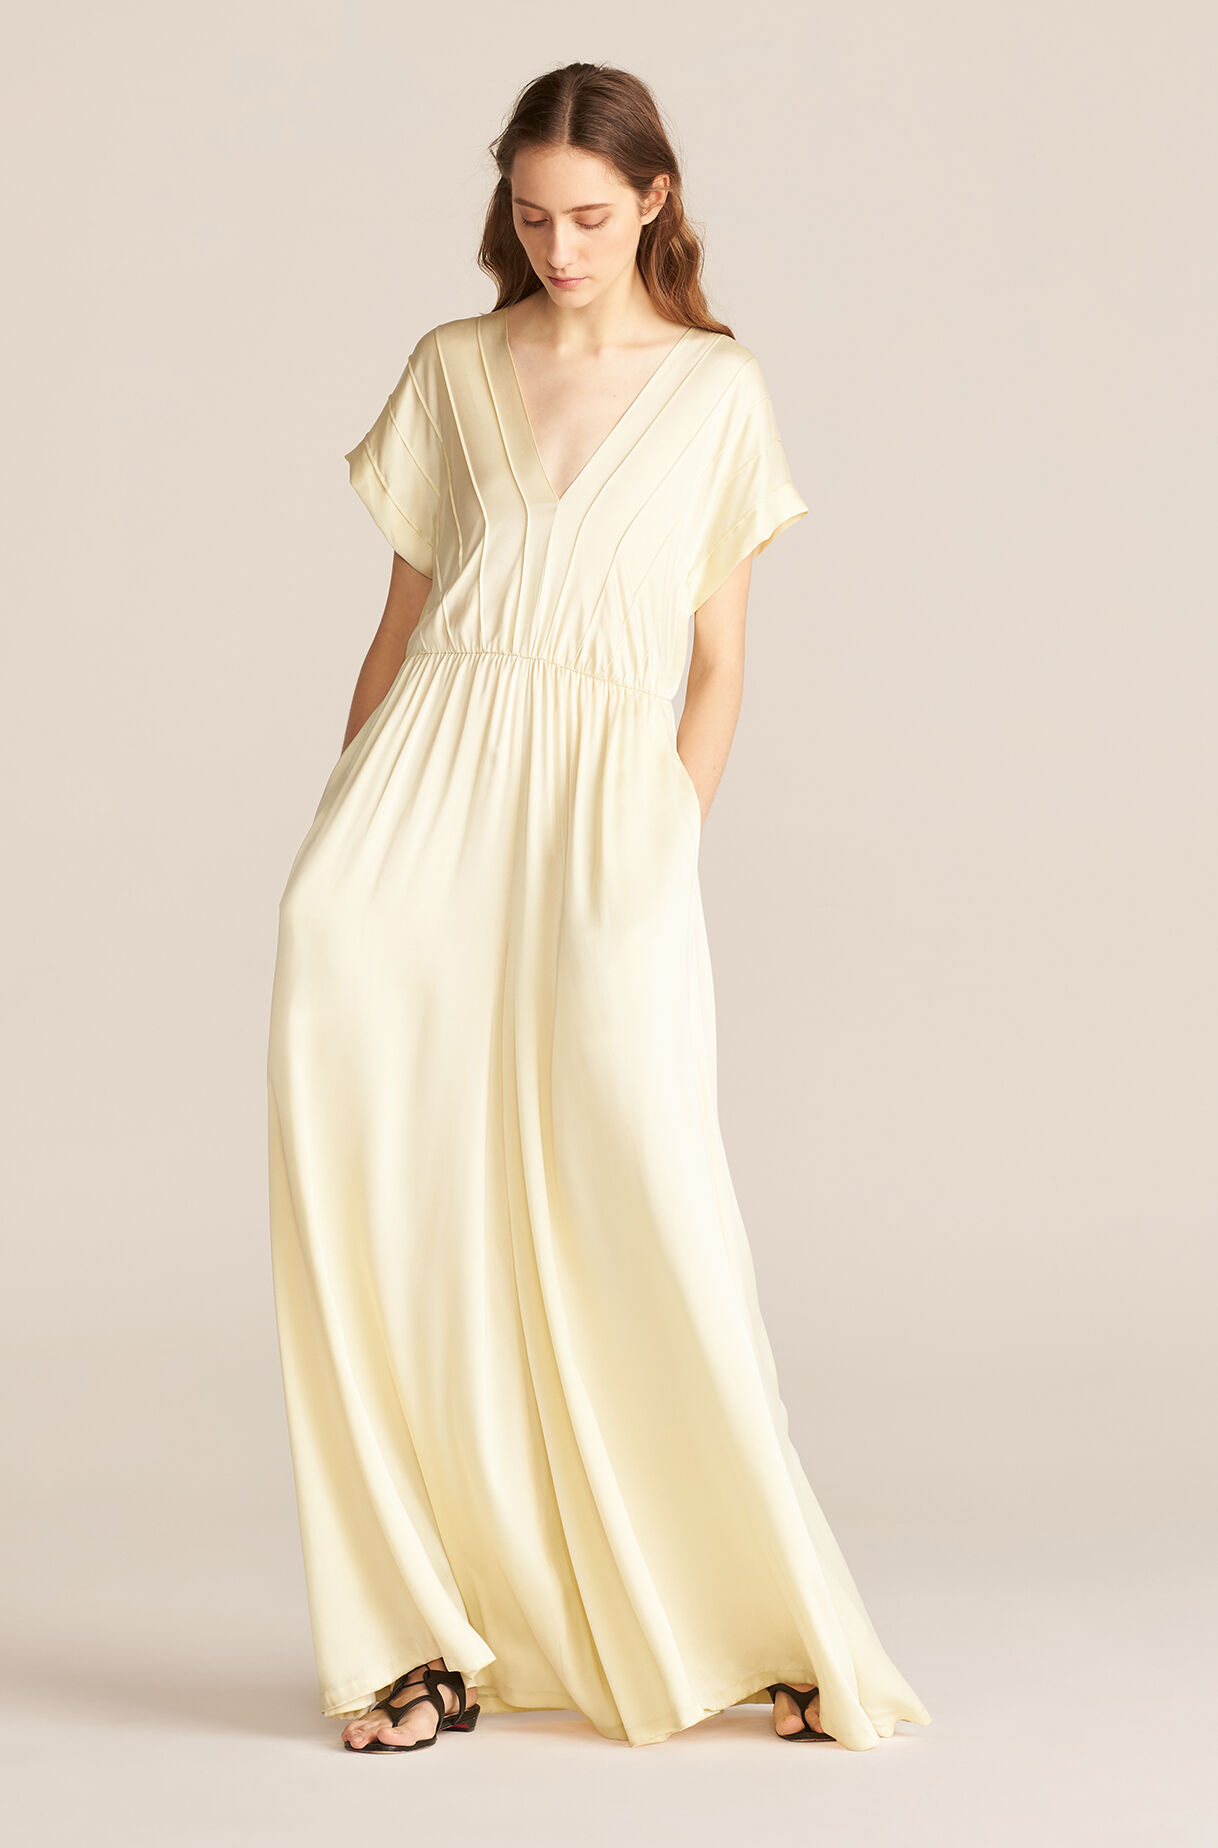 lemonade yellow jumpsuit for a spring wedding